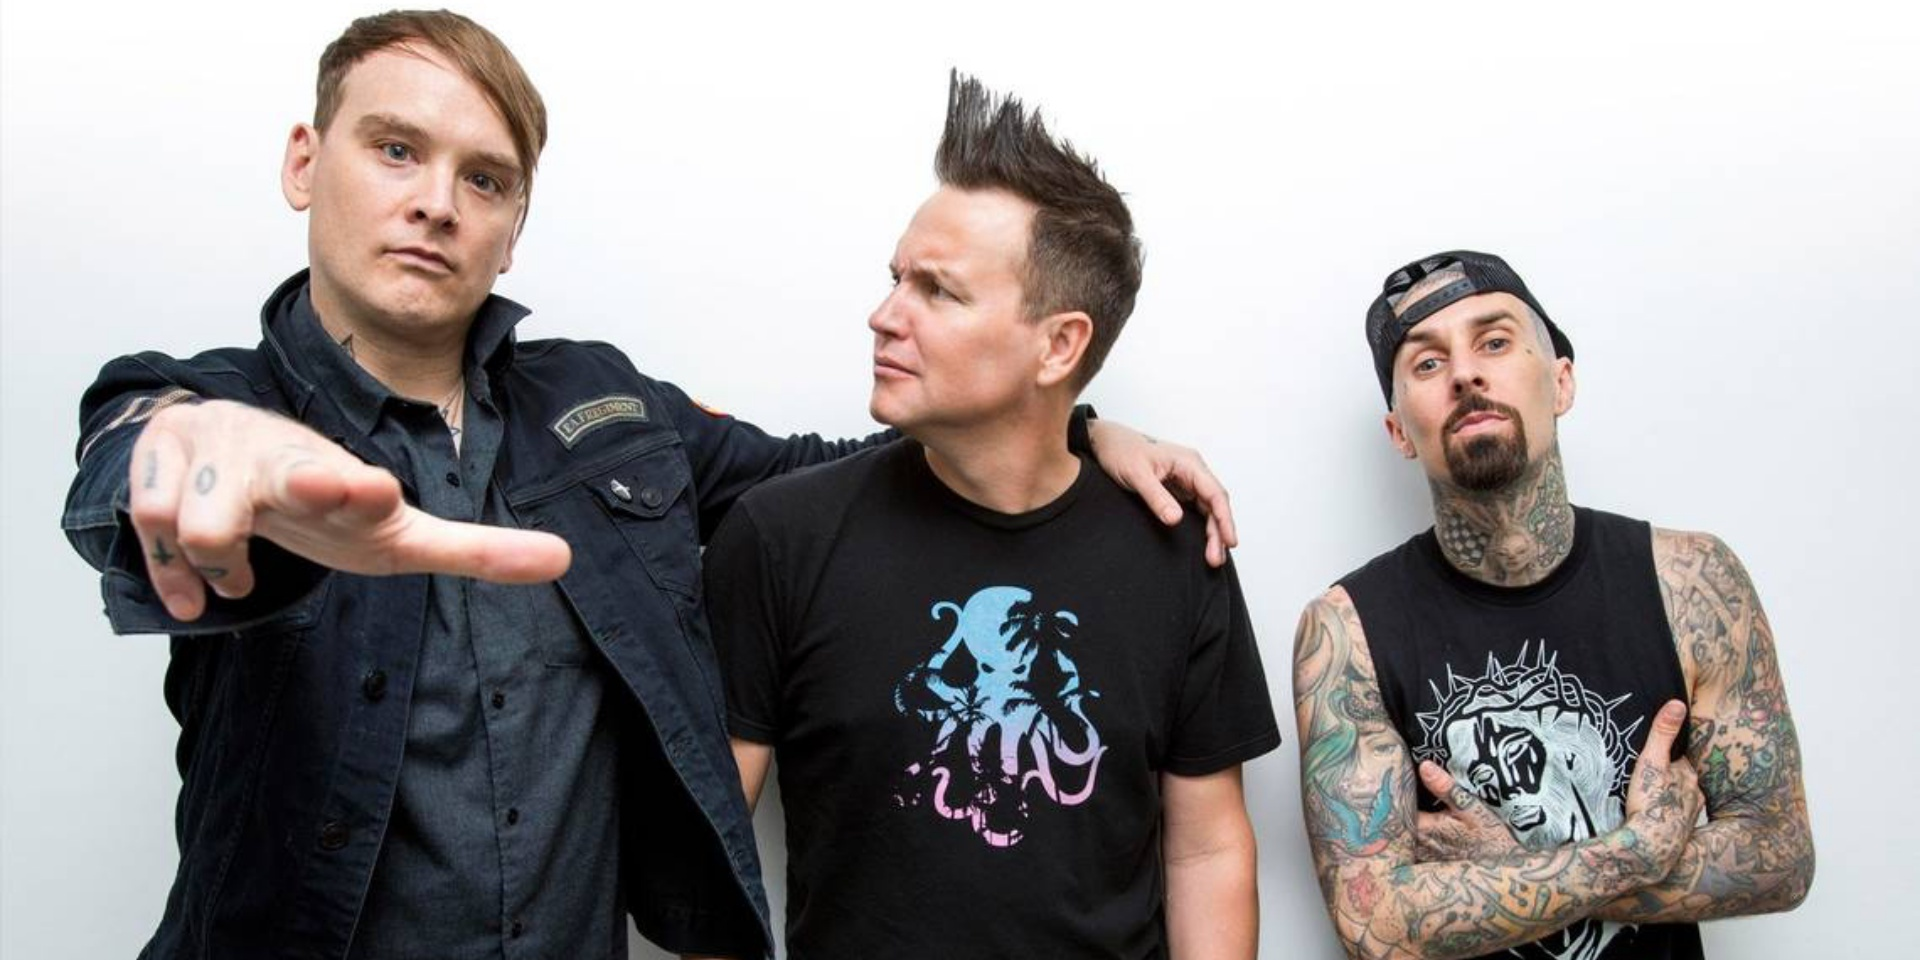 Blink-182 releases nostalgic new single 'Blame It On My Youth' – listen